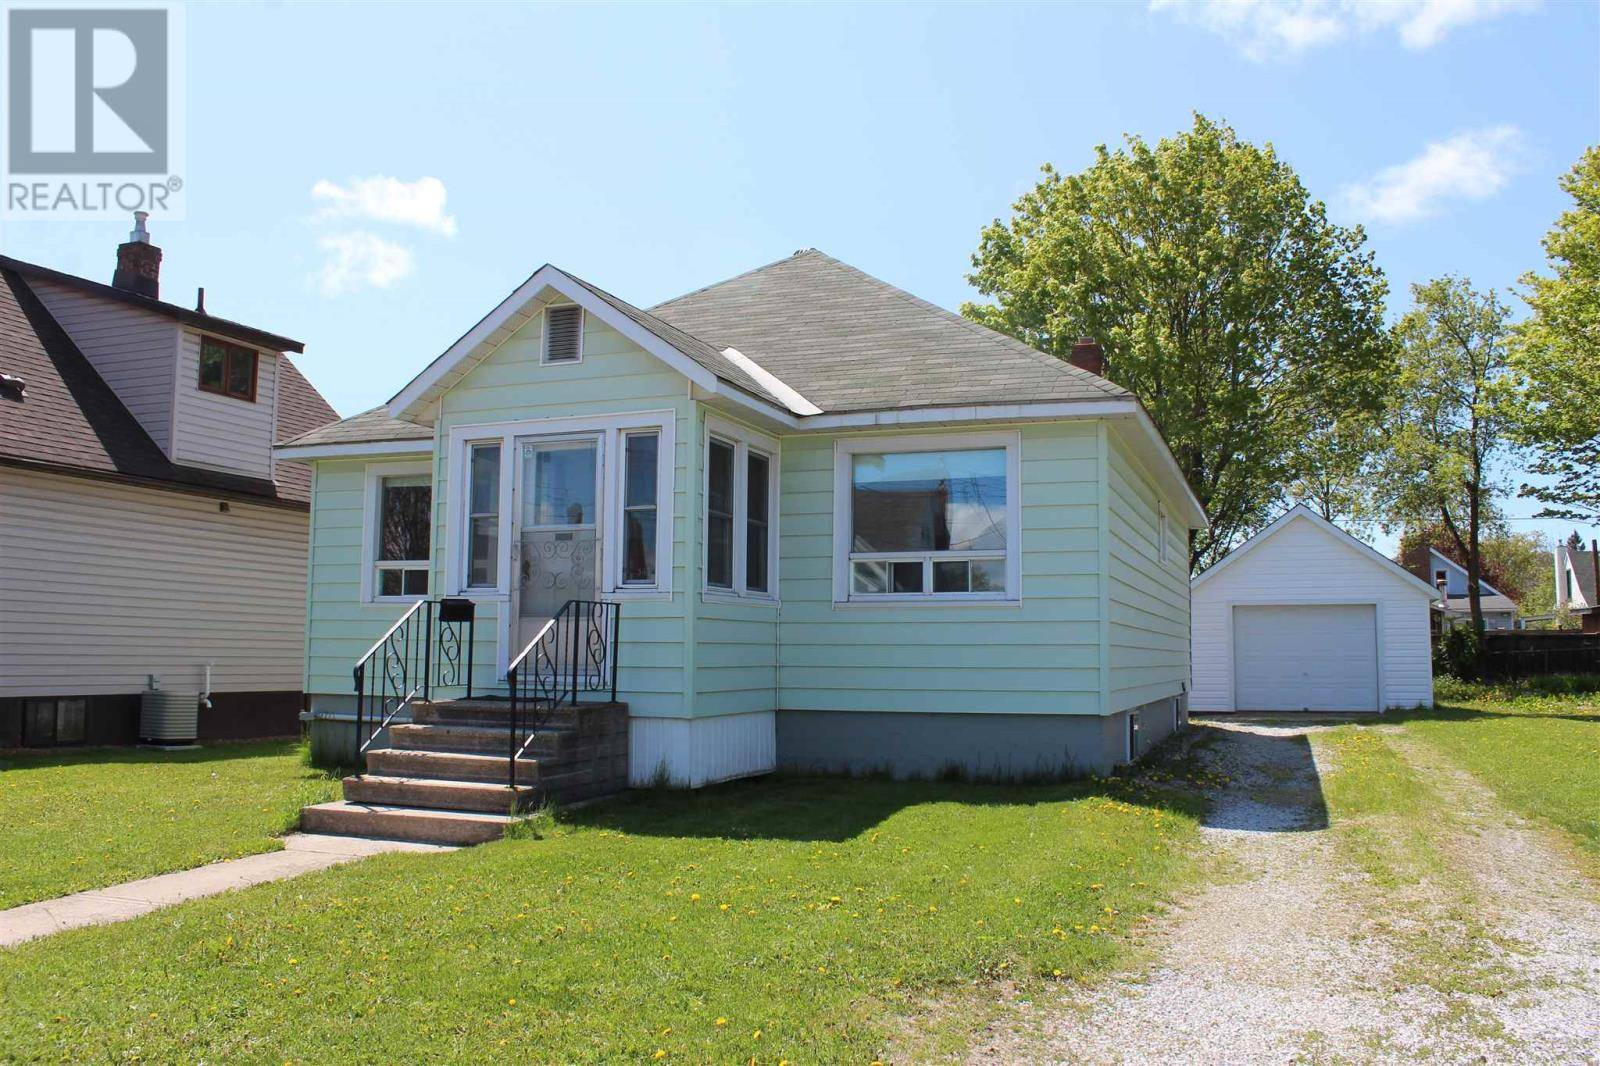 House for sale at 343 Franklin St Sault Ste. Marie Ontario - MLS: SM125768